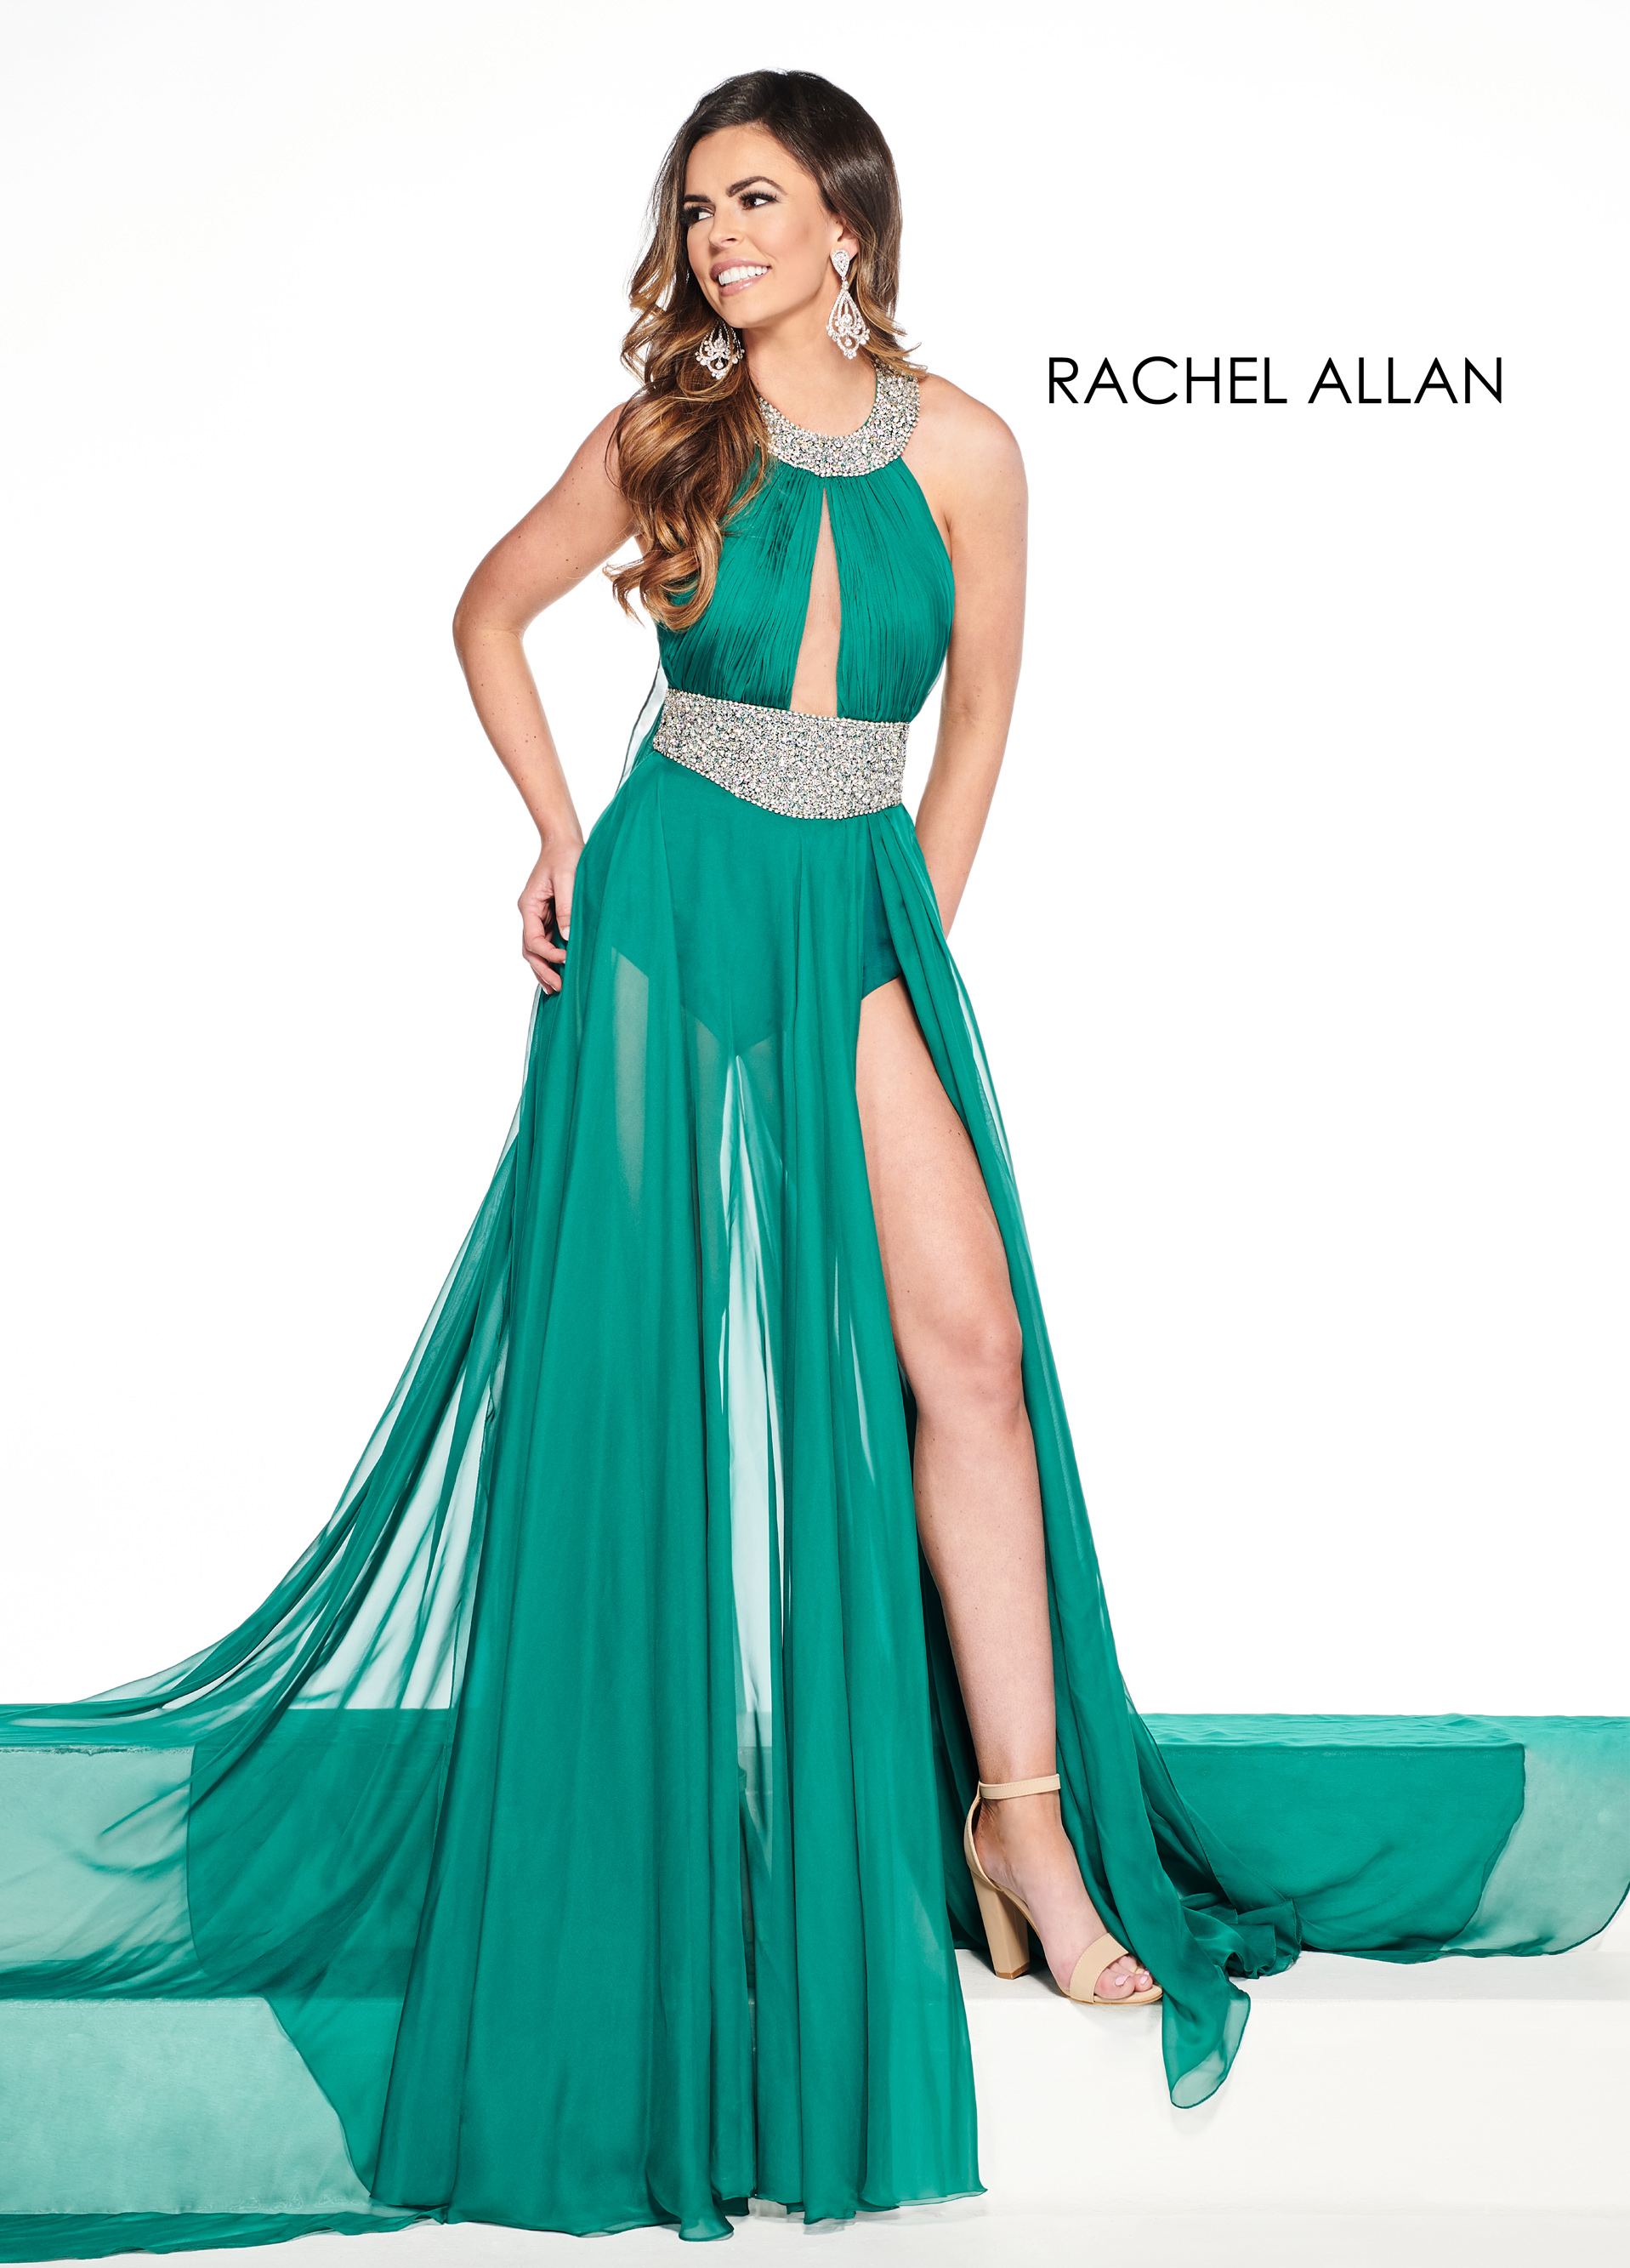 Halter Shorts With Overlay Pageant Dresses in Green Color